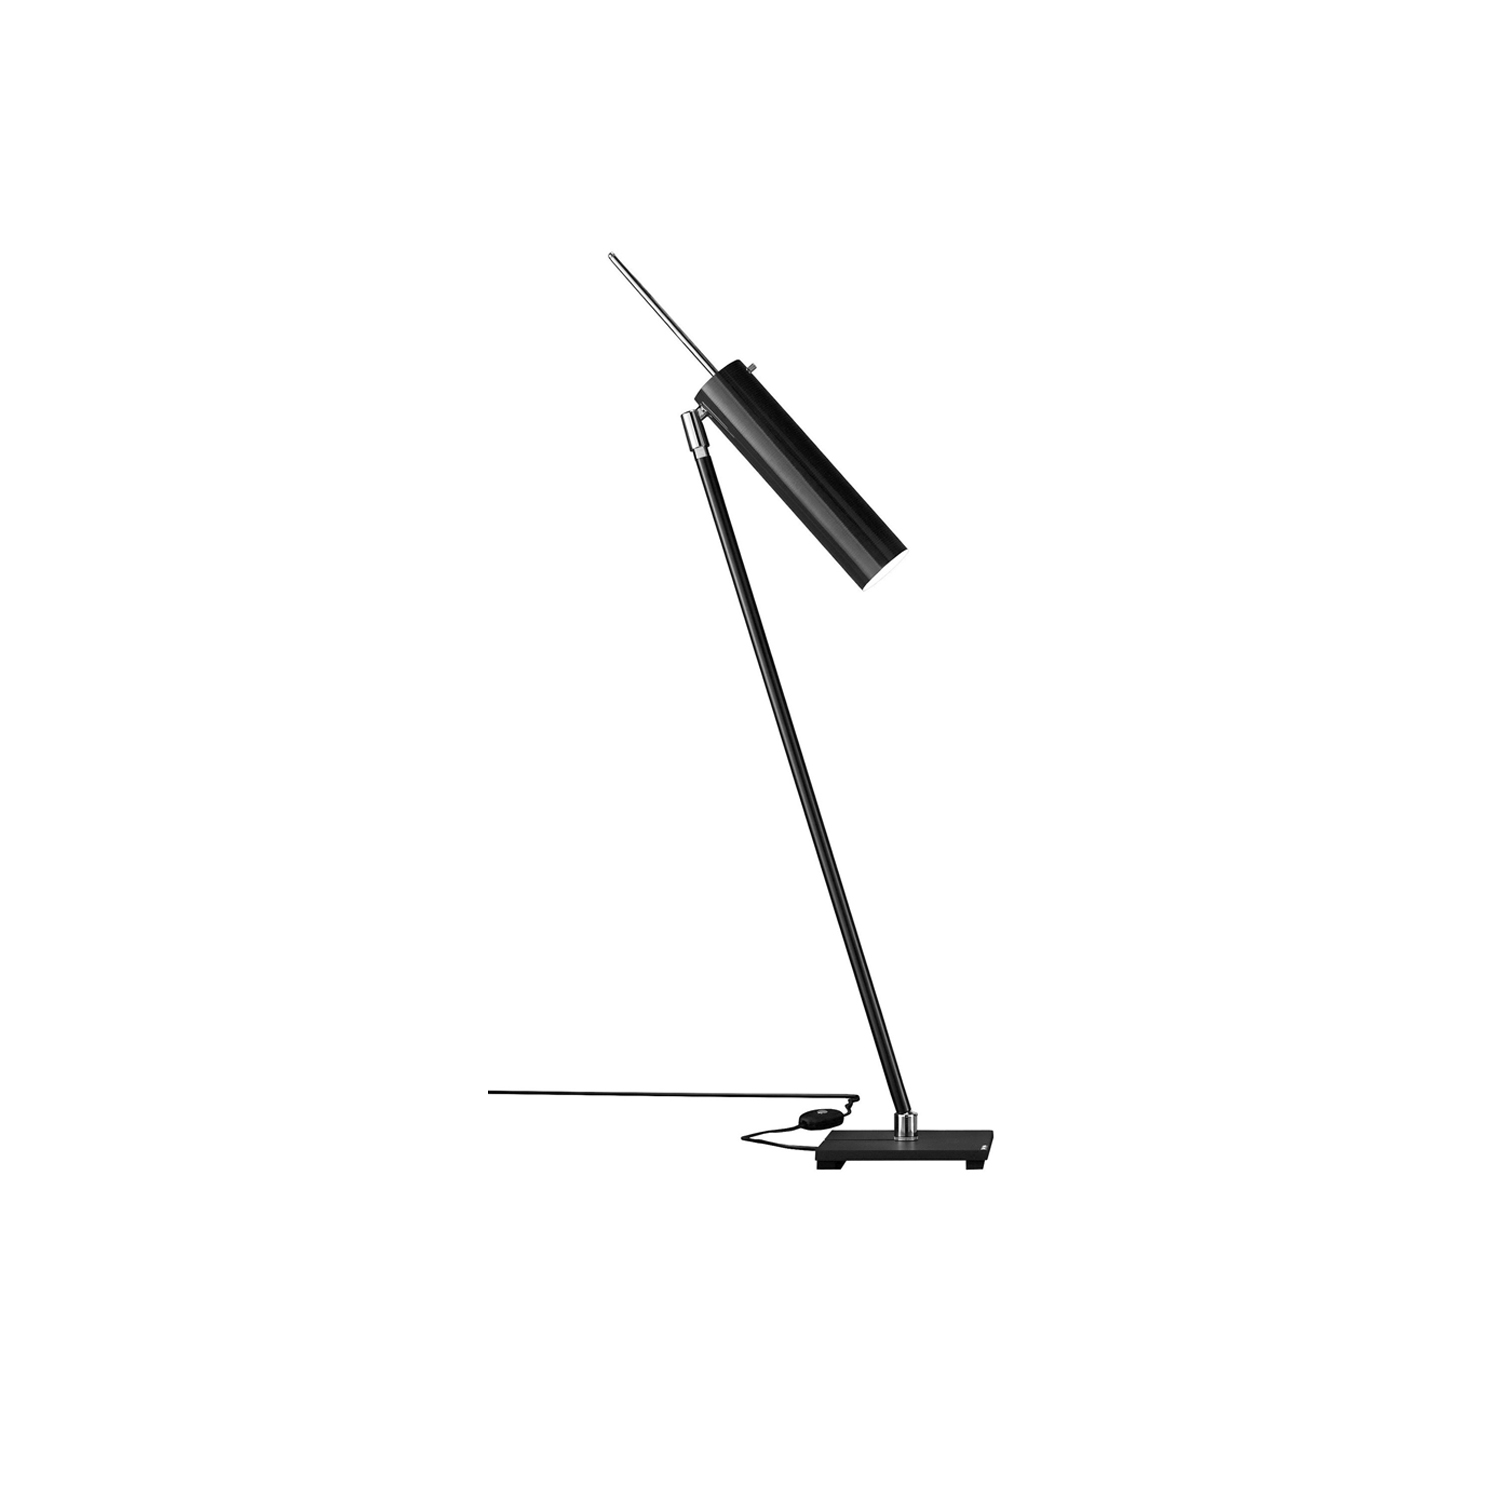 Lucenera 500 Table Lamp - Lucenera was developed from a simple concept: taking the limelight off the lamp and giving centre stage to the light, depending on the subject illuminated. To achieve this, Enzo Catellani used a black carbon tube and flexible support. The shape is the simplest one possible; the object is the utmost in versatility. | Matter of Stuff